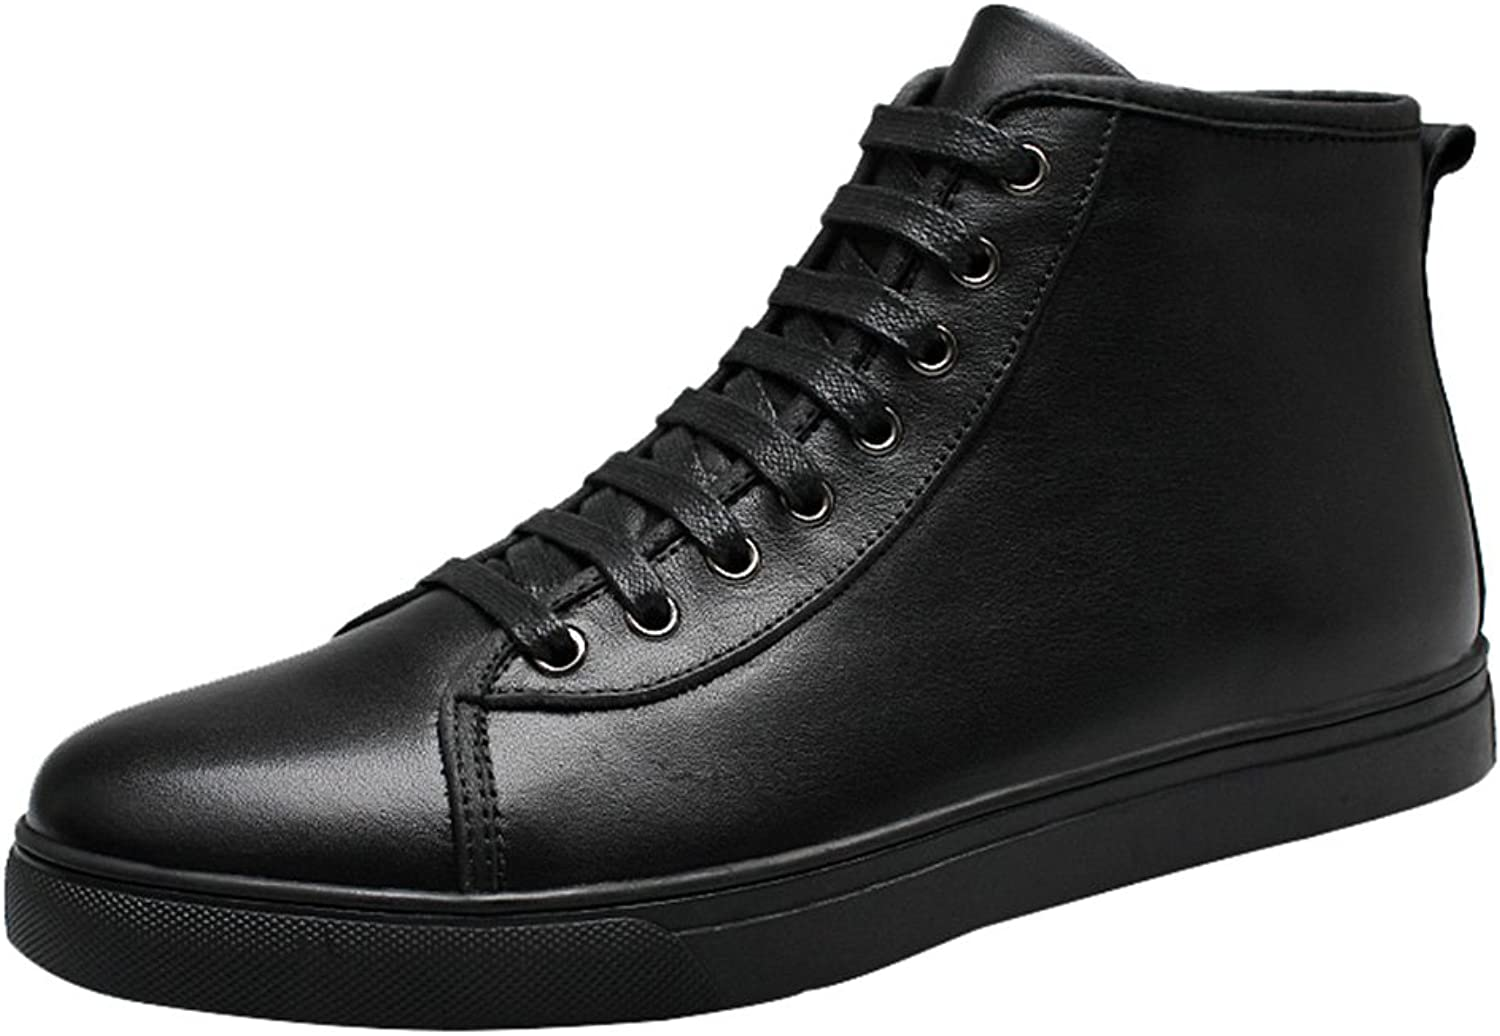 Snowman Lee Men's Mid-top Leather Causal Winter shoes Smooth Upper Fashion Sneaker Black